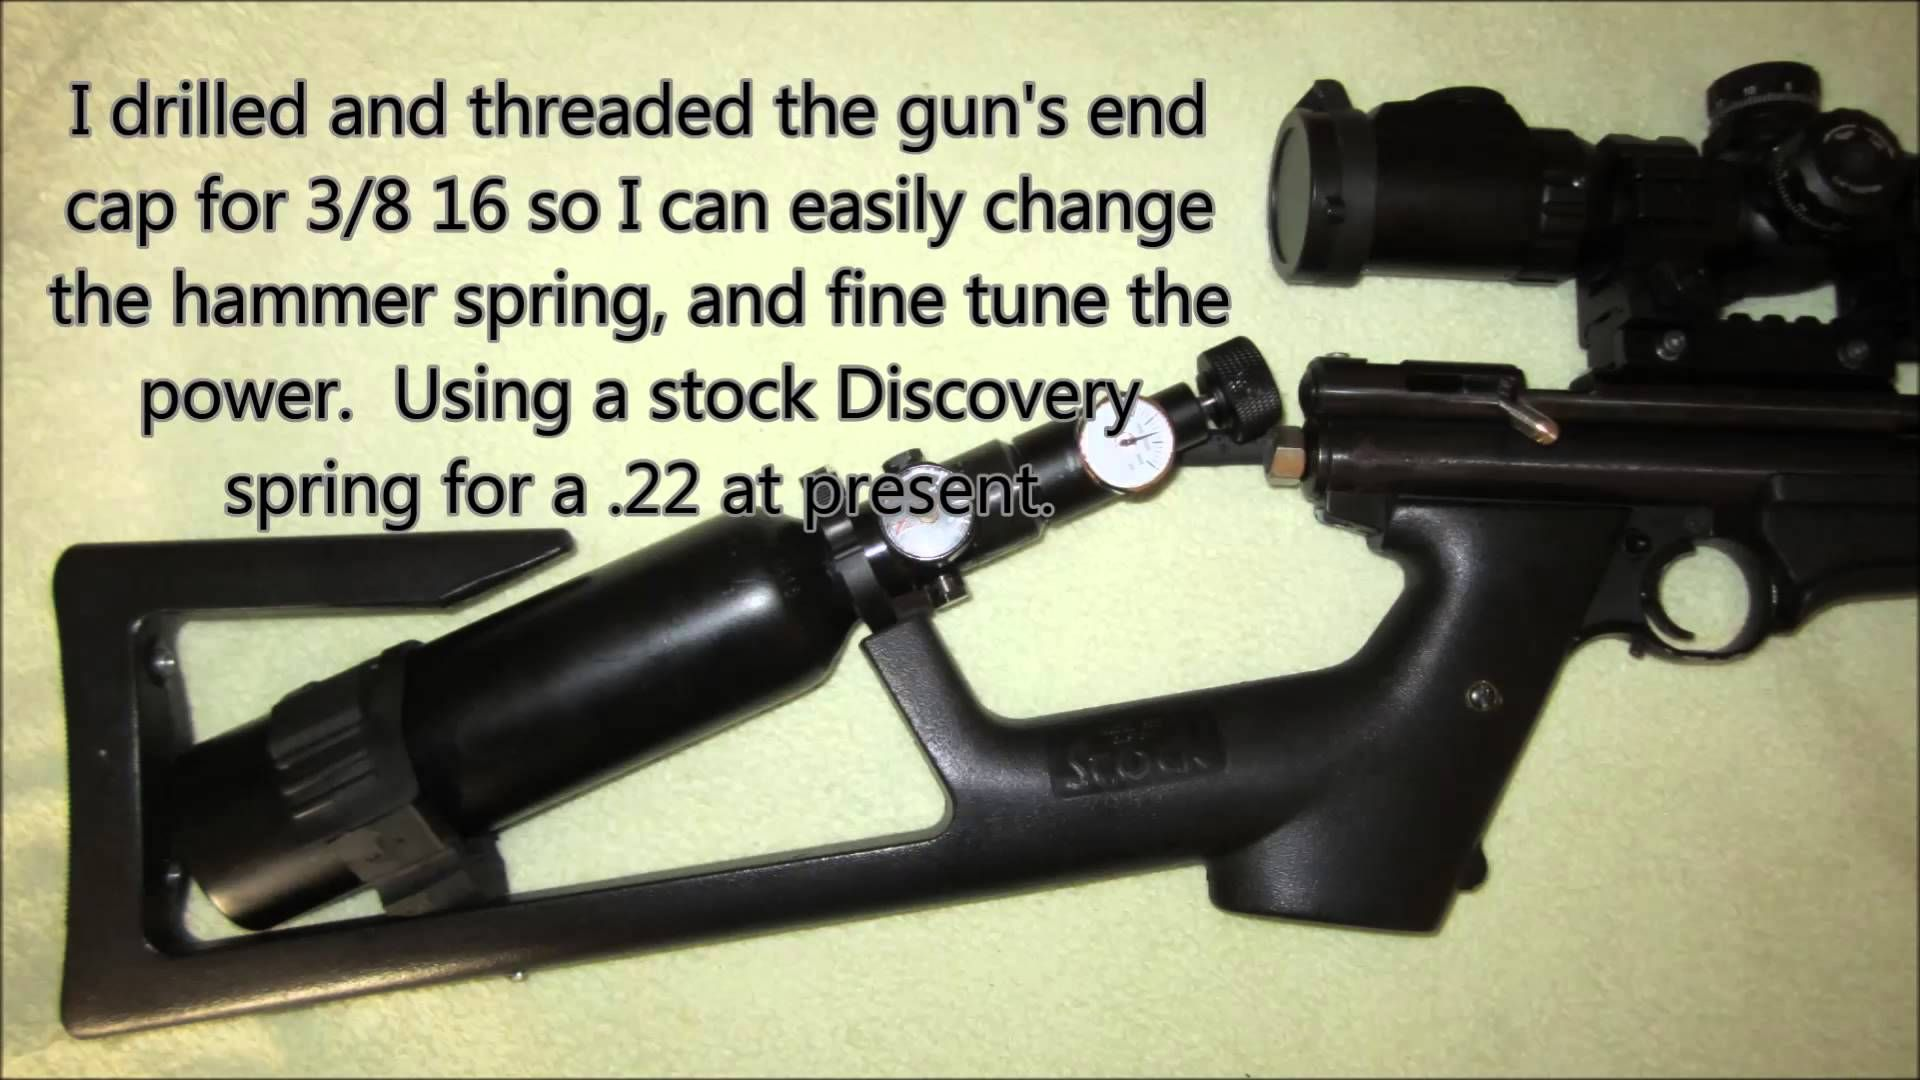 Air Gun Blog Pyramyd Air Report: How To Convert From CO2 To AirAir Gun Blog Pyramyd Air Report